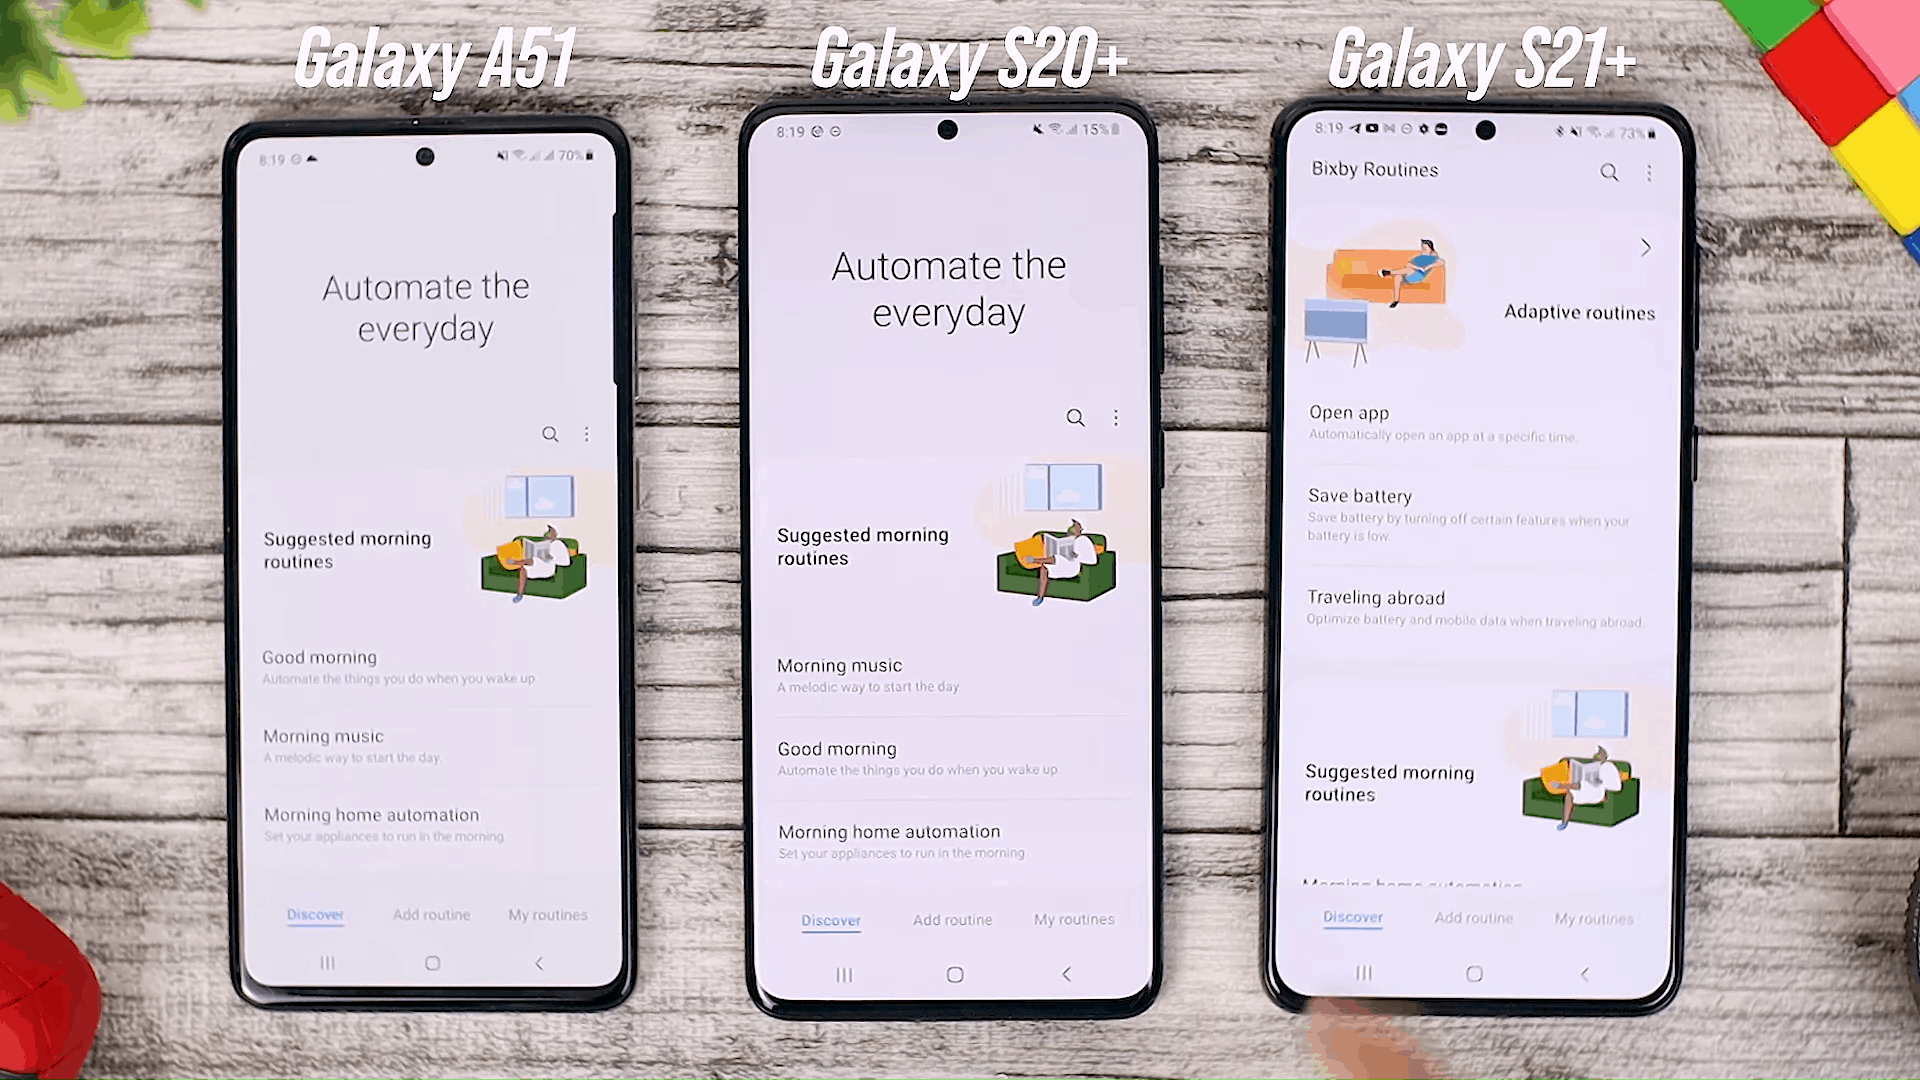 Bixby Routines - One UI 3.0 features of Samsung Galaxy A51 and its comparison with the Galaxy S20+ and One UI 3.1 on the Galaxy S21+